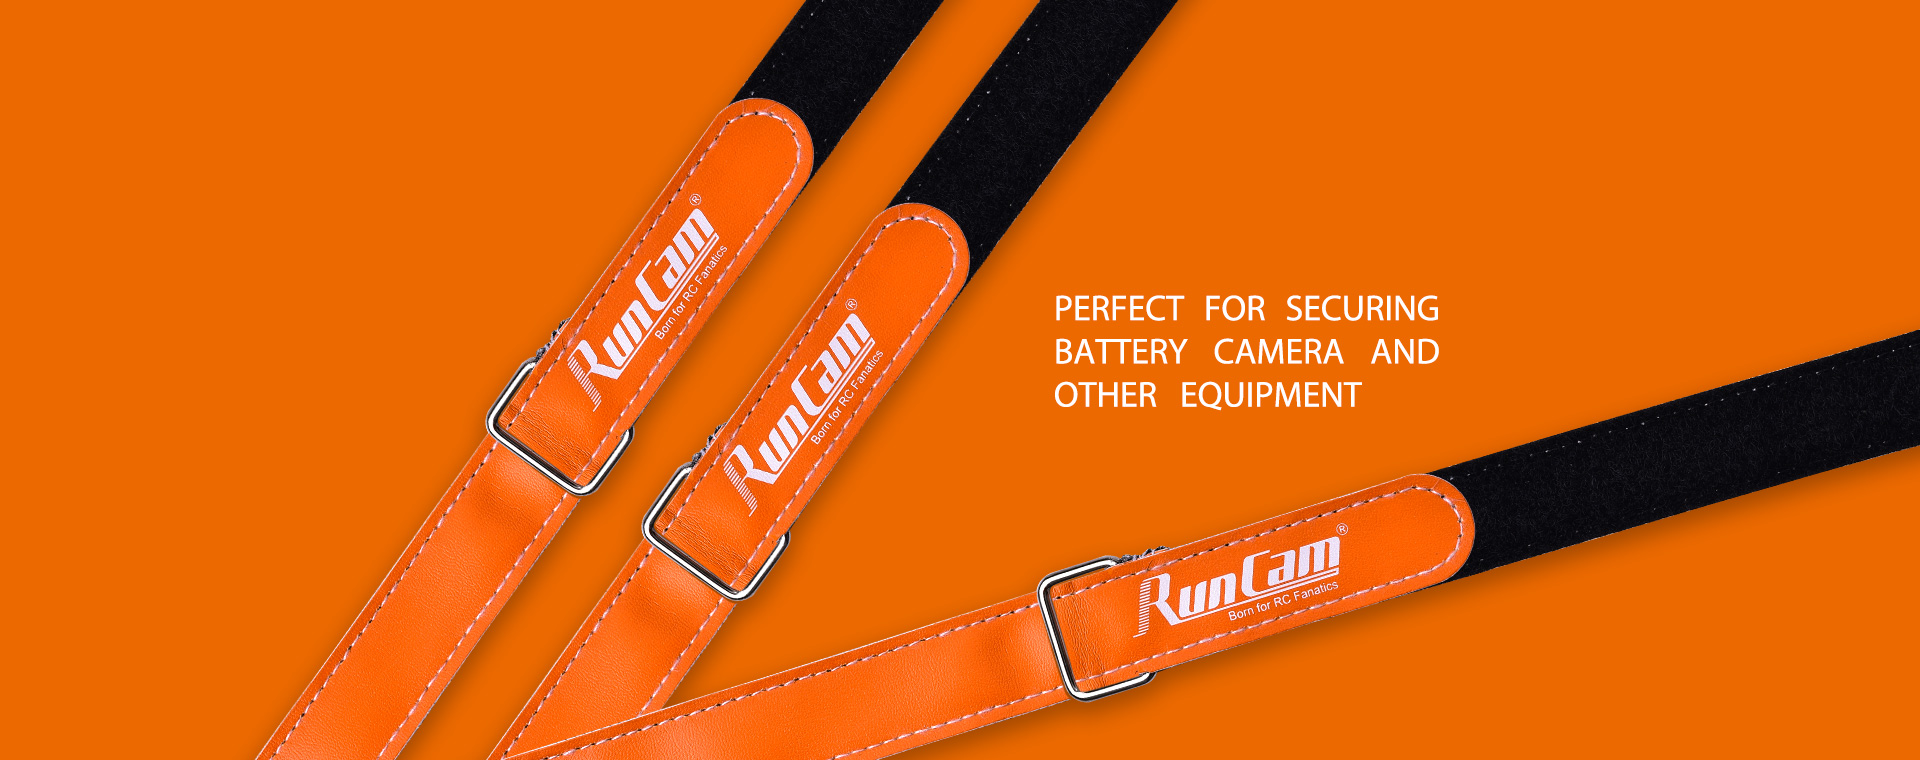 16 x 250mm, RunCam, Battery Tie Down Strap for RC Multirotor